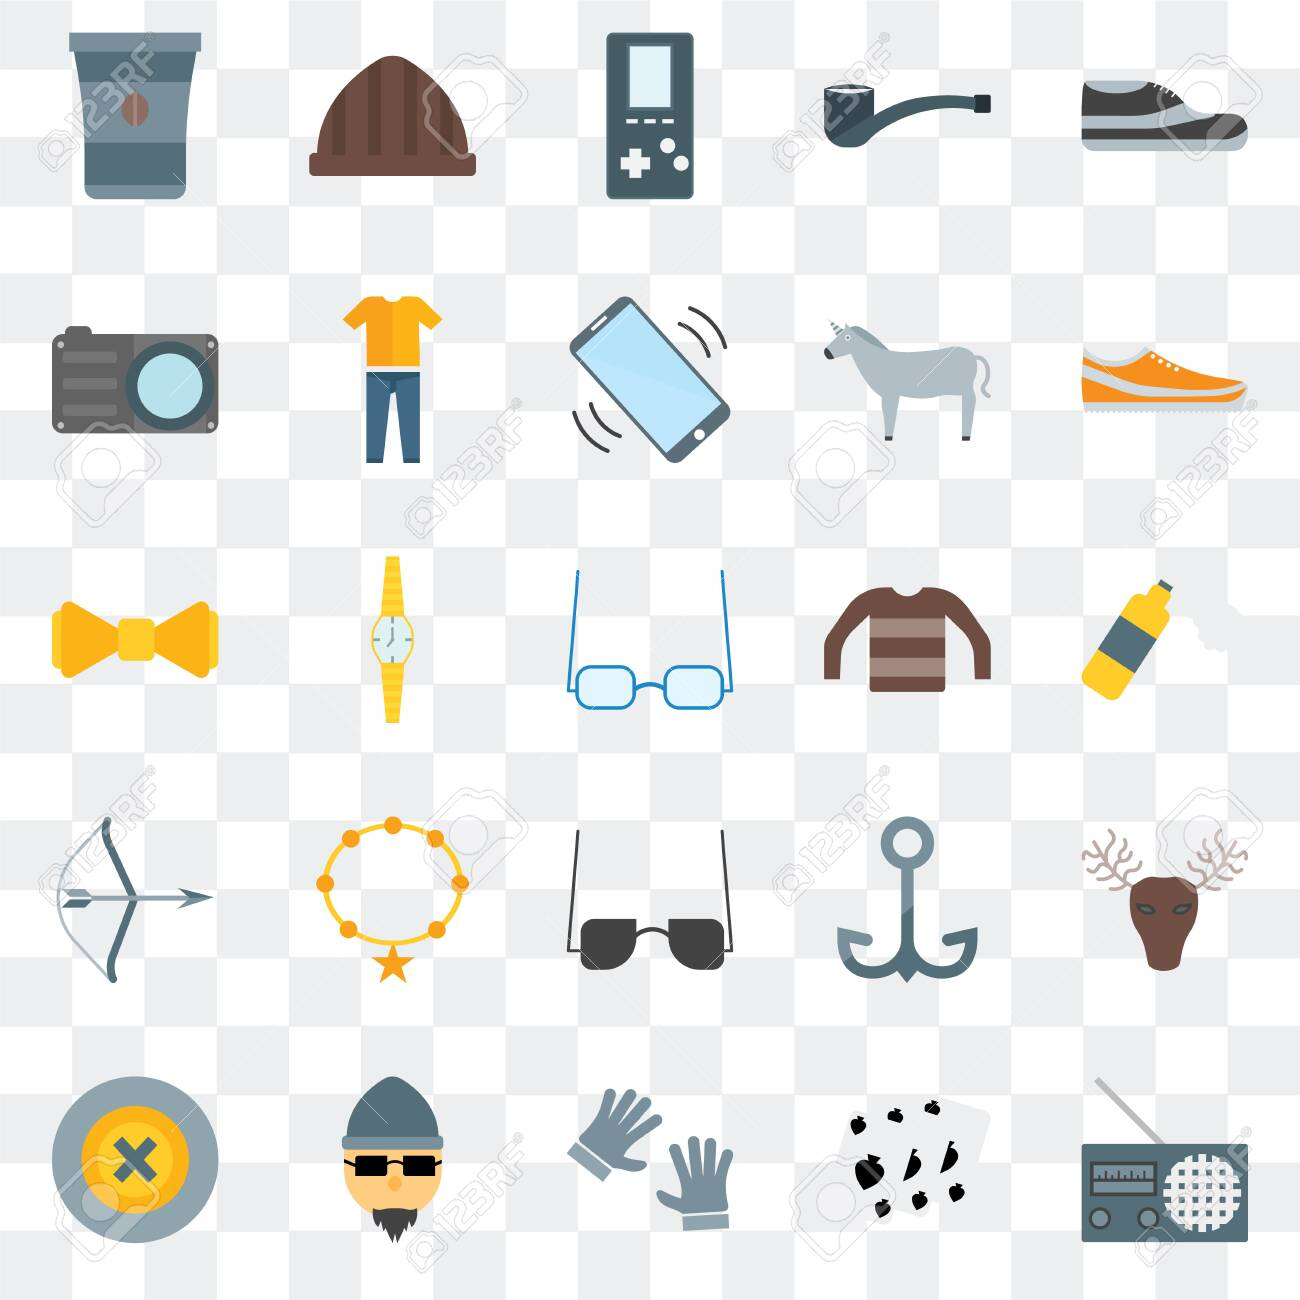 Set Of 25 transparent icons such as Radio, Leisure, Accessory, Hipster, Buttons, Sneakers, Long sleeves, Sunglasses, Archery, Photo camera, Accessory, web UI transparency icon pack - 130332470